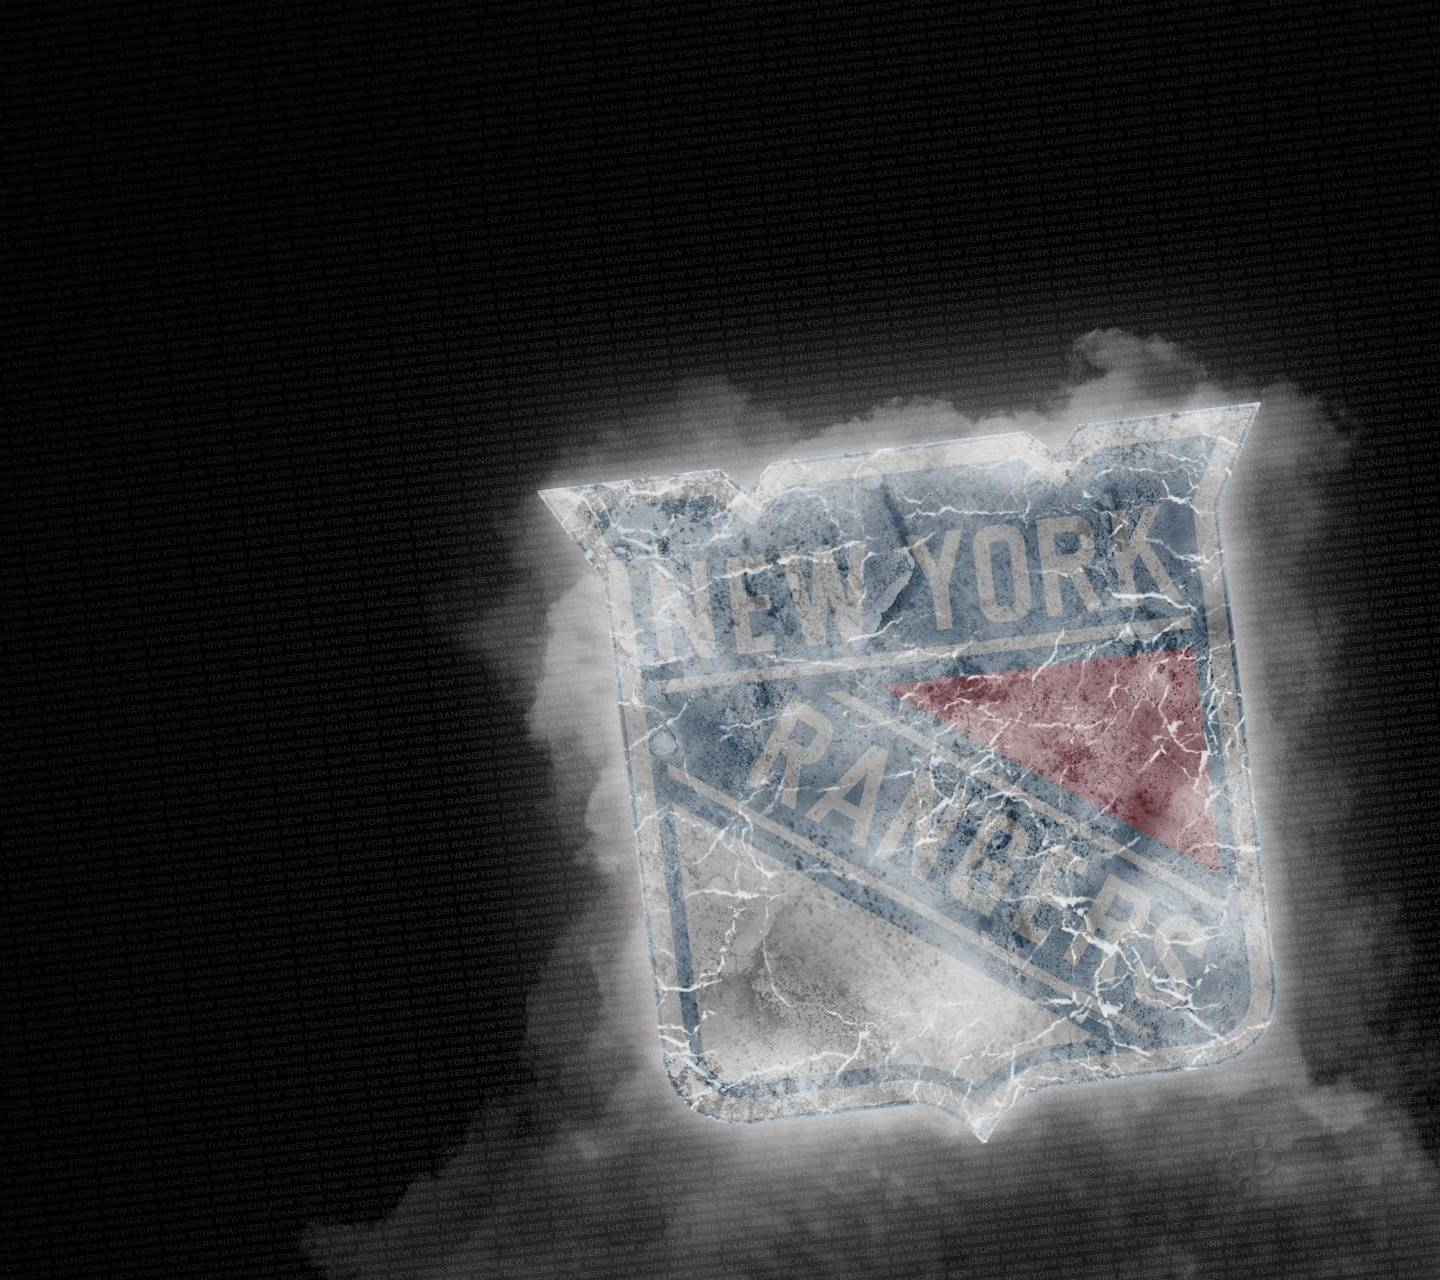 New York Rangers Wallpaper By Wreed 41 Free On Zedge